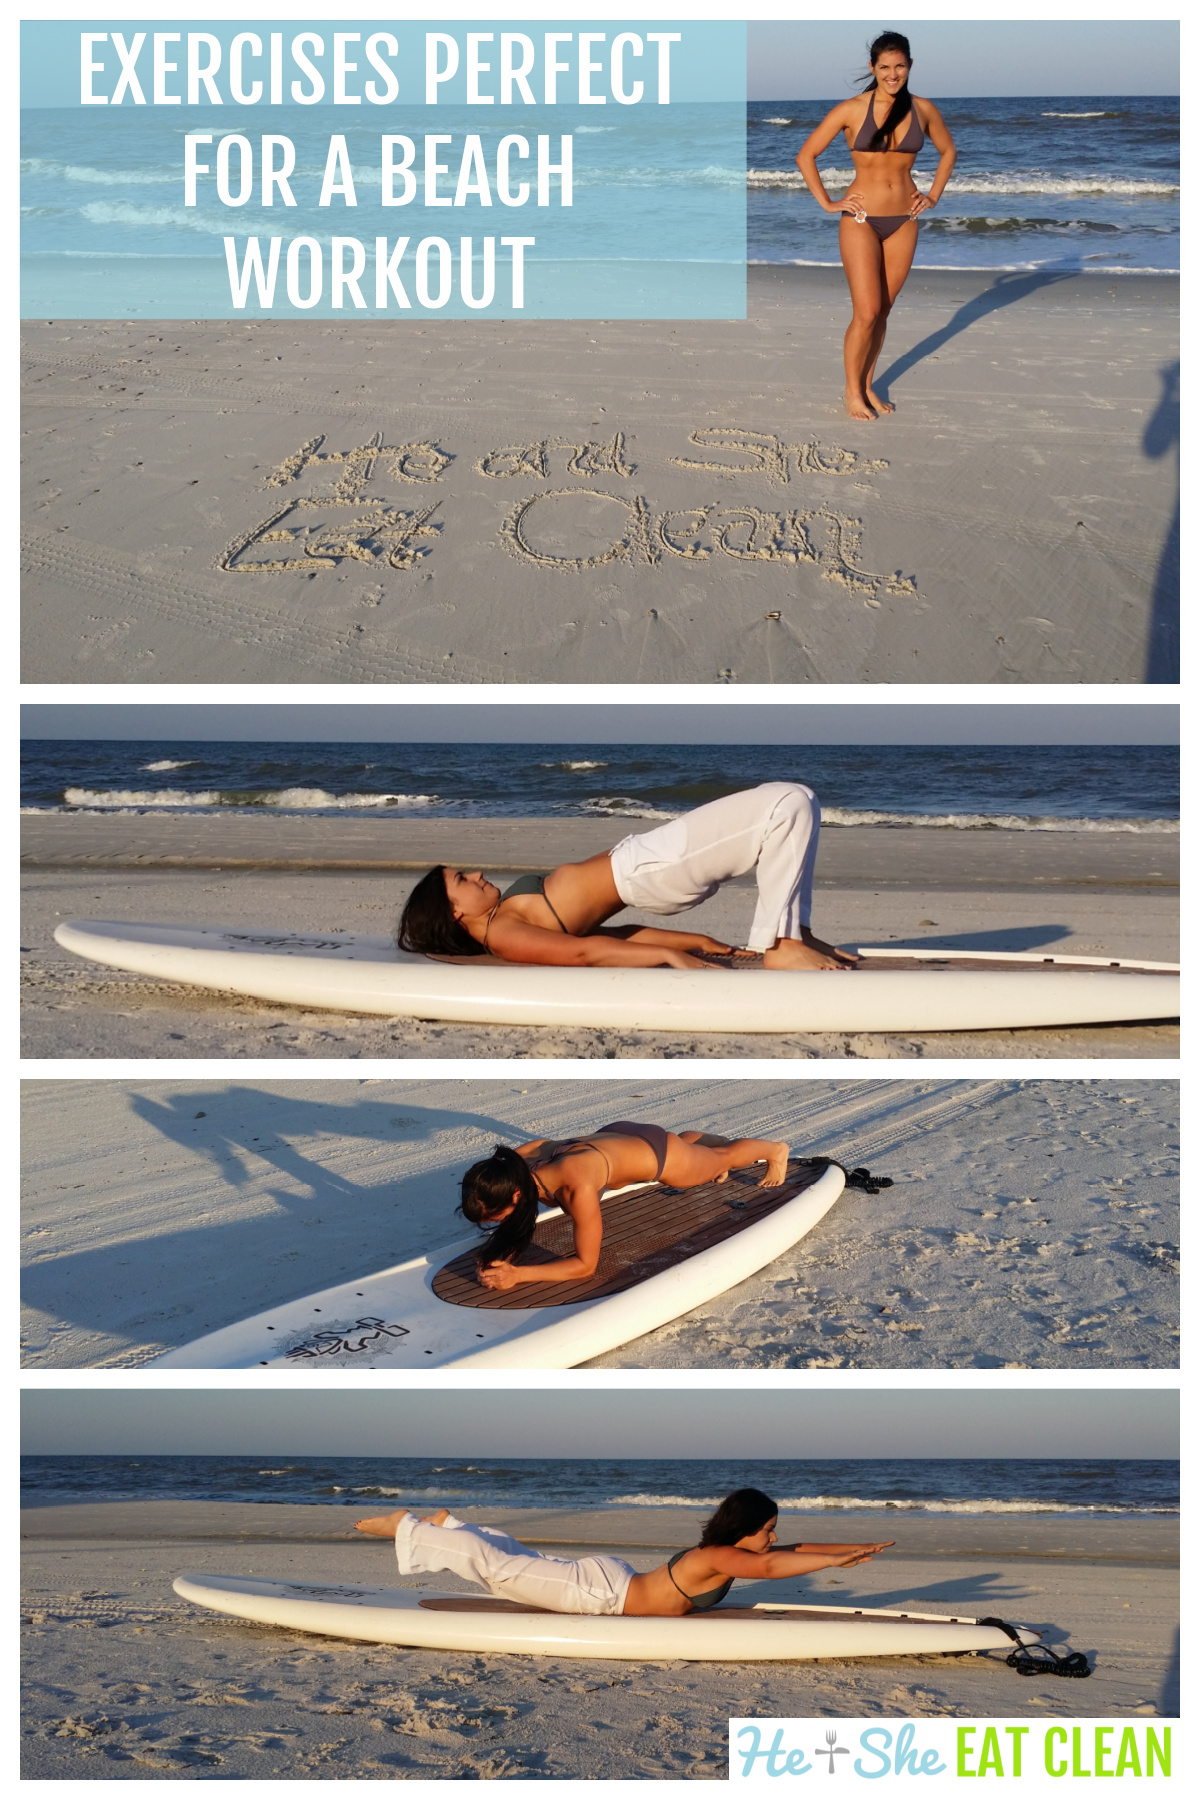 collage of a female doing exercises on a beach